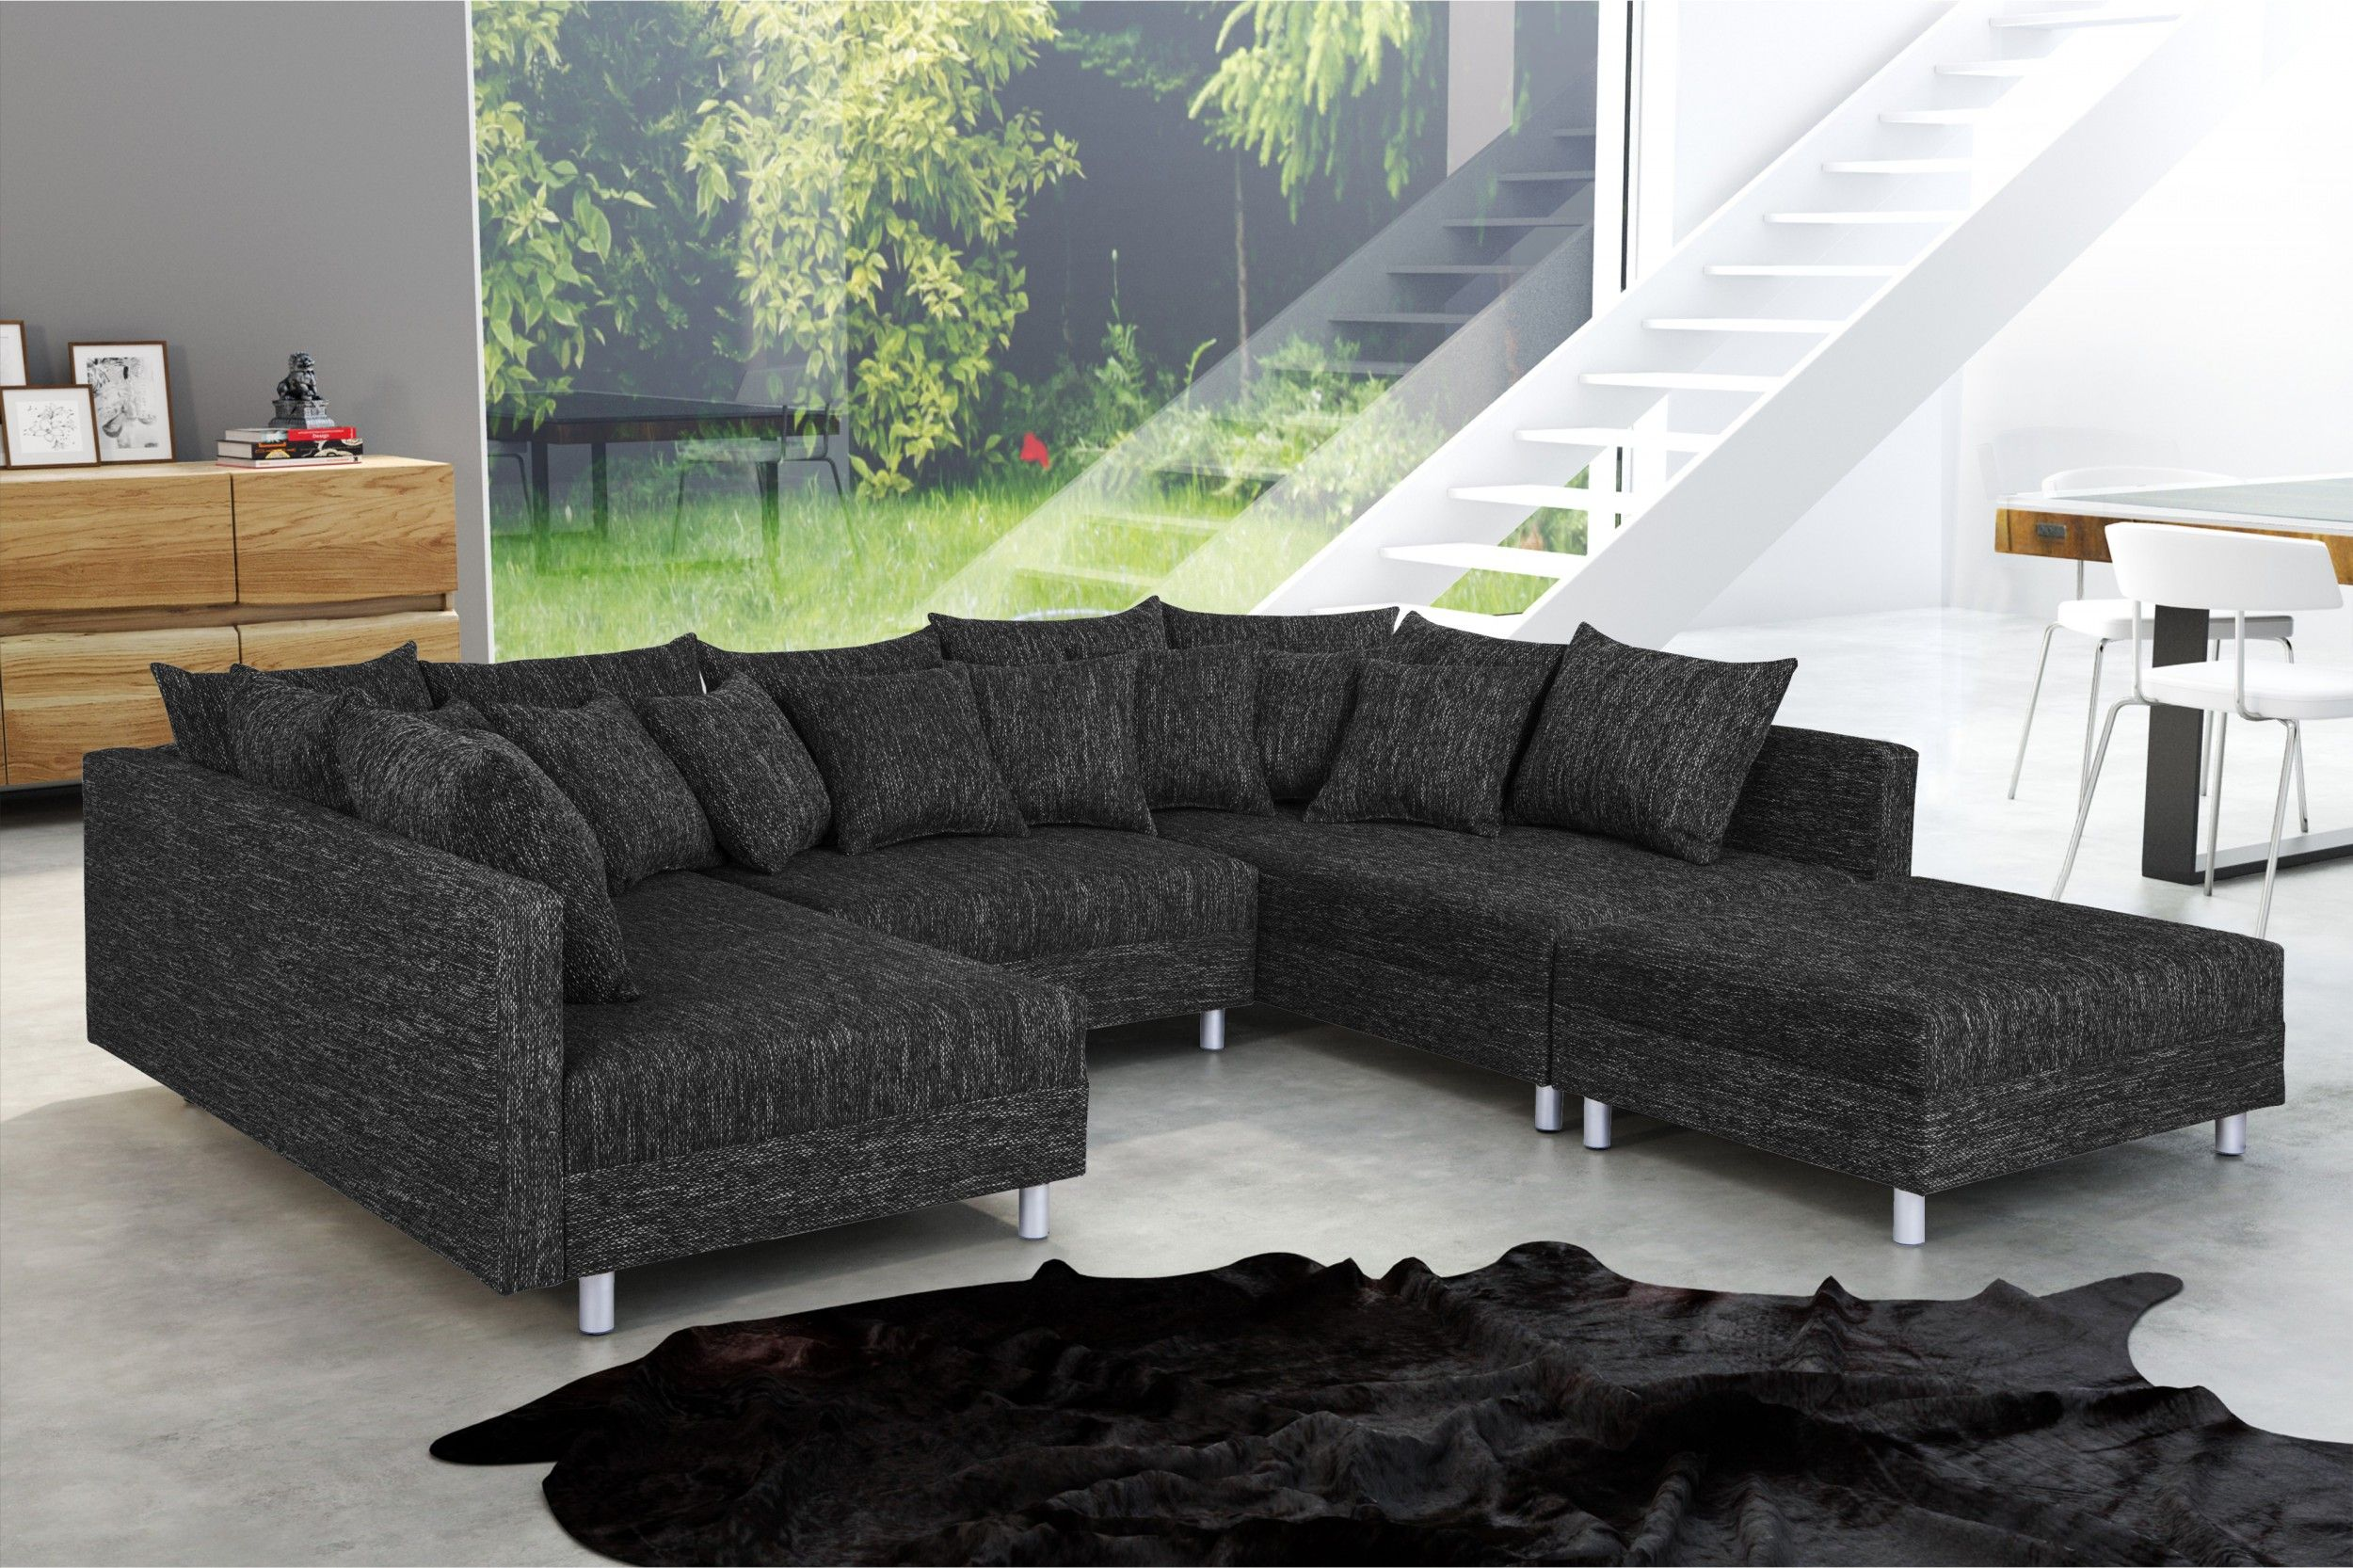 wohnlandschaft sofa couch ecksofa eckcouch in gewebestoff schwarz minsk xxl polsterm bel sofa. Black Bedroom Furniture Sets. Home Design Ideas